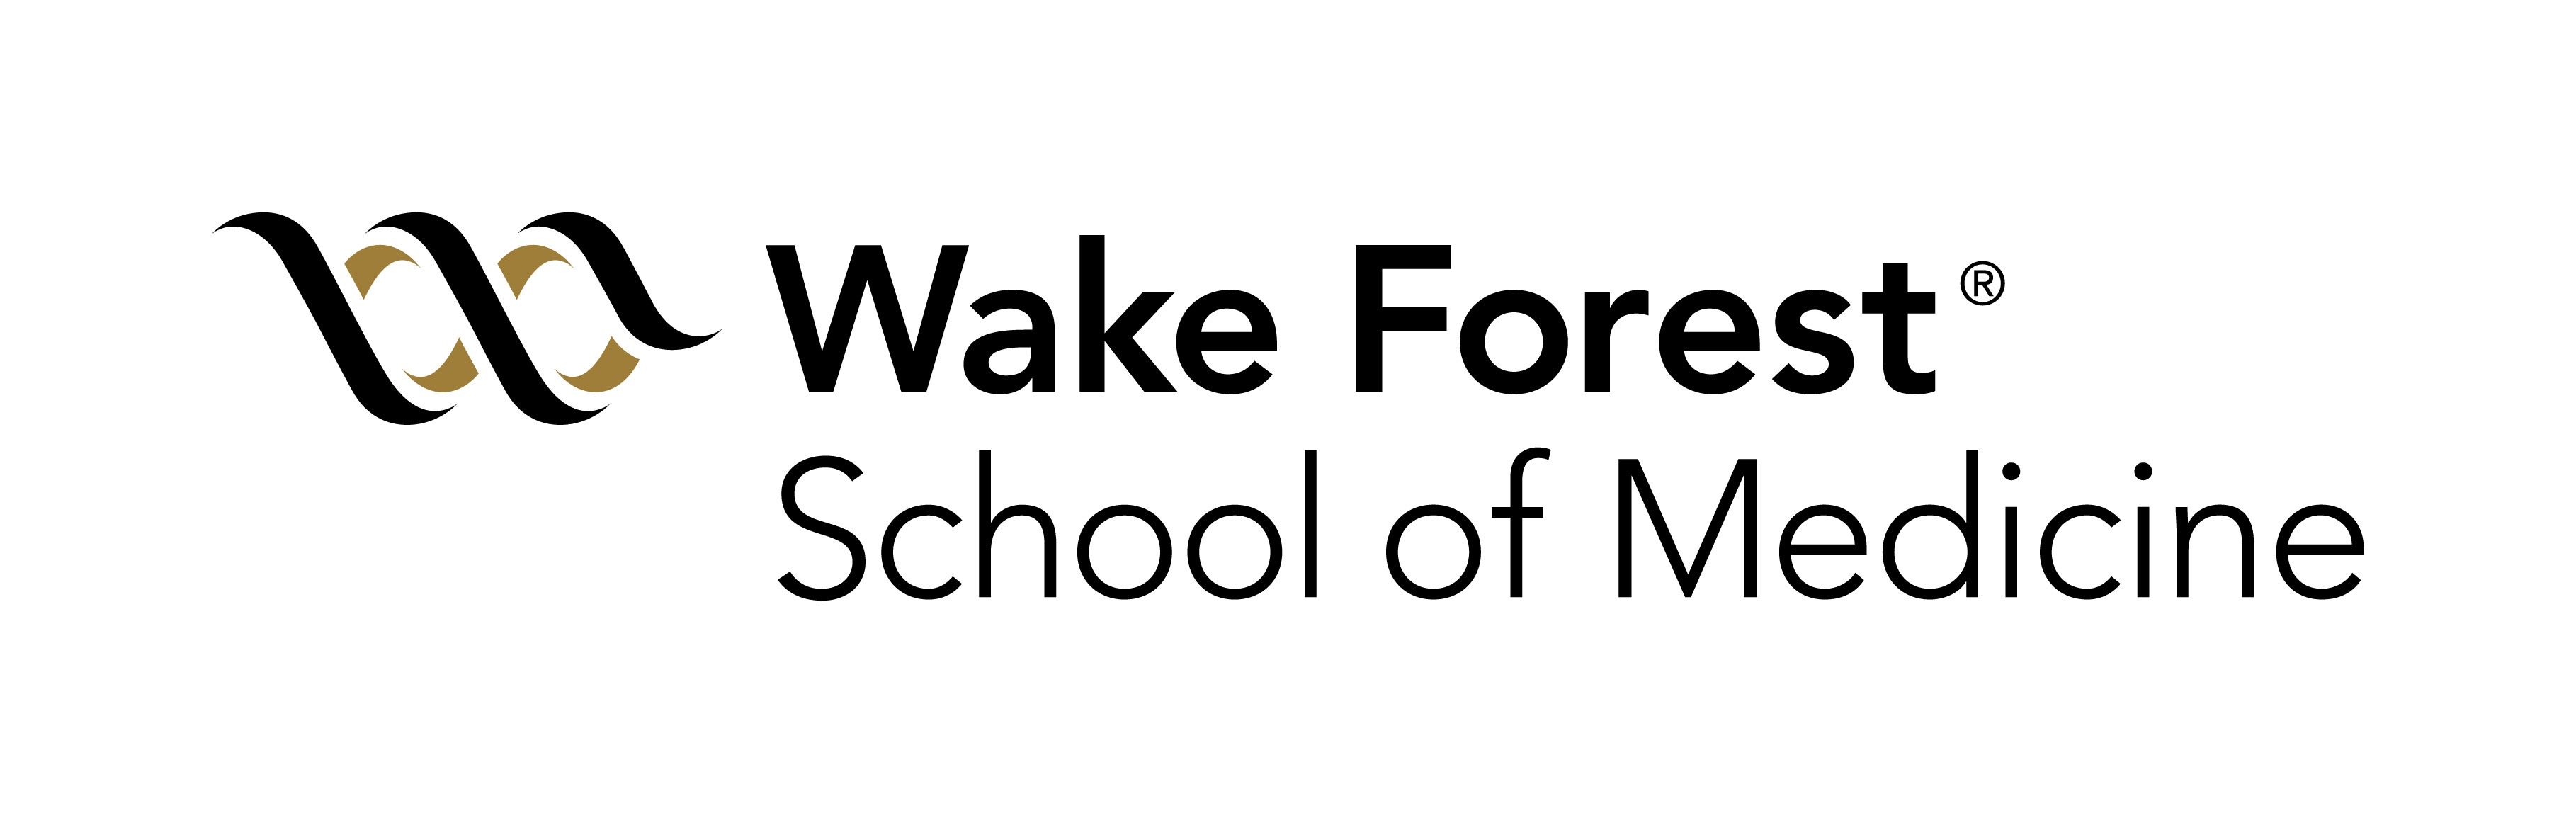 Wake Forest School of Medicine